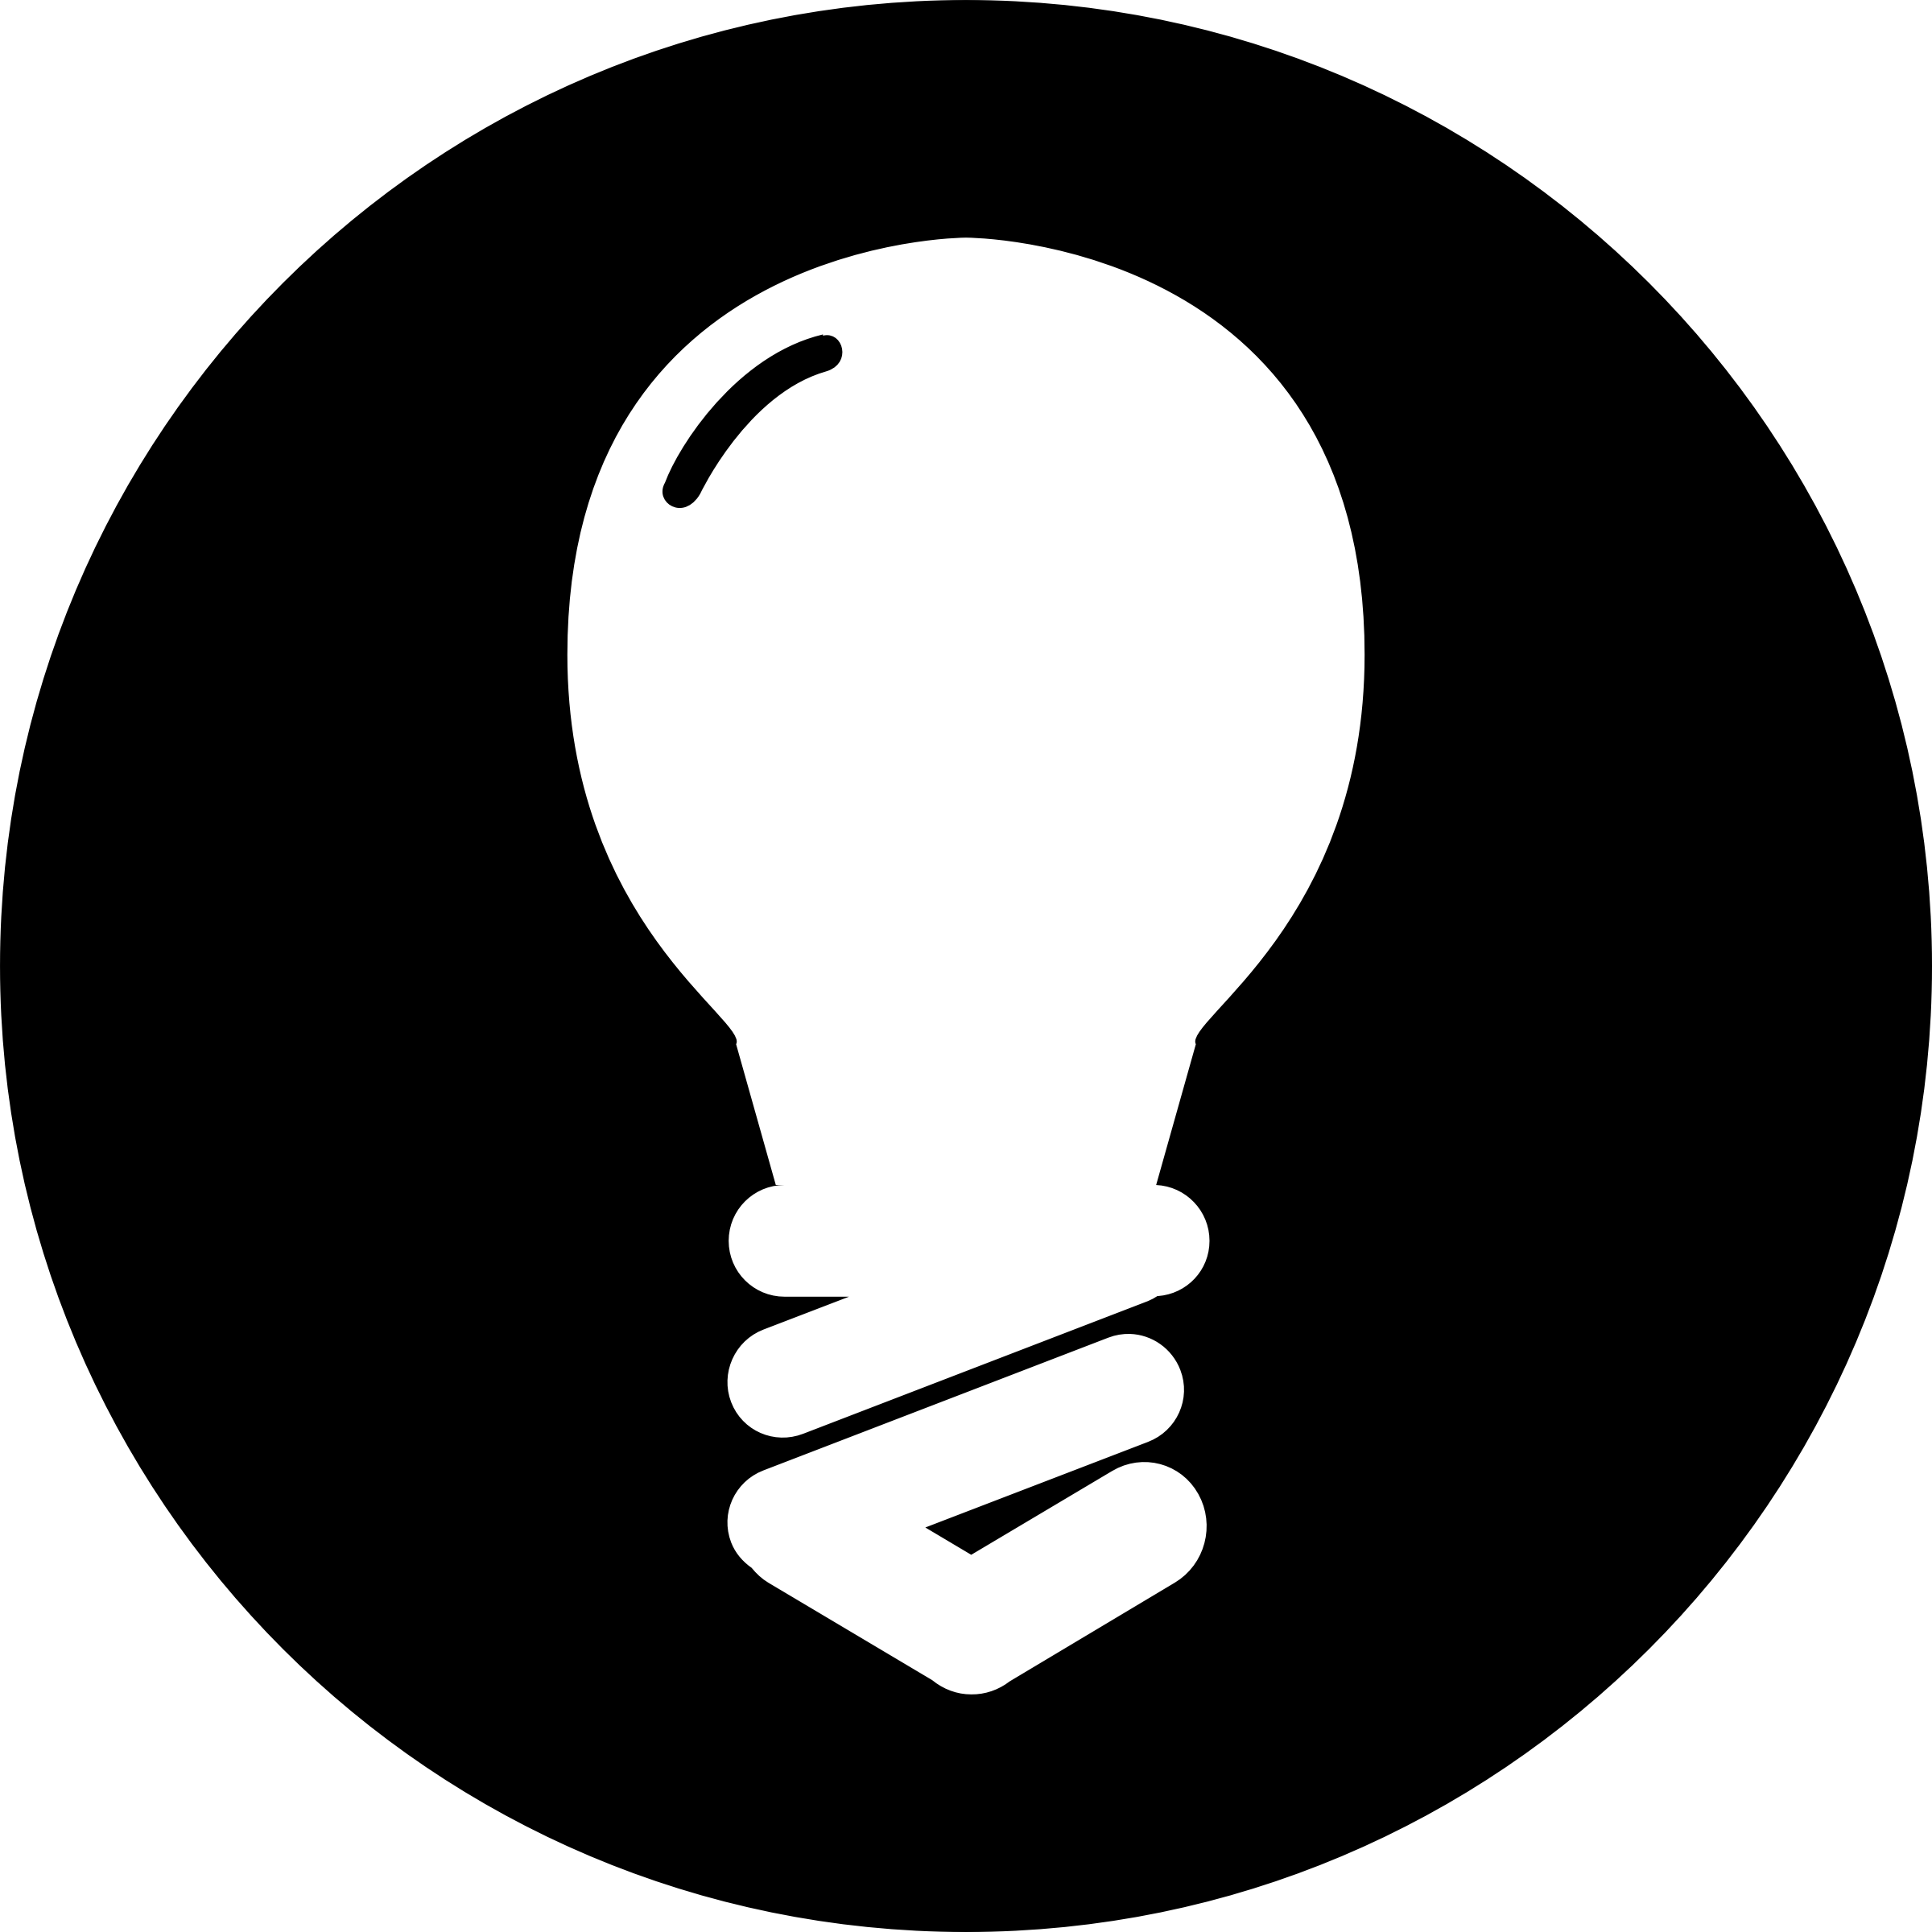 Light Bulb Icon by Minduka